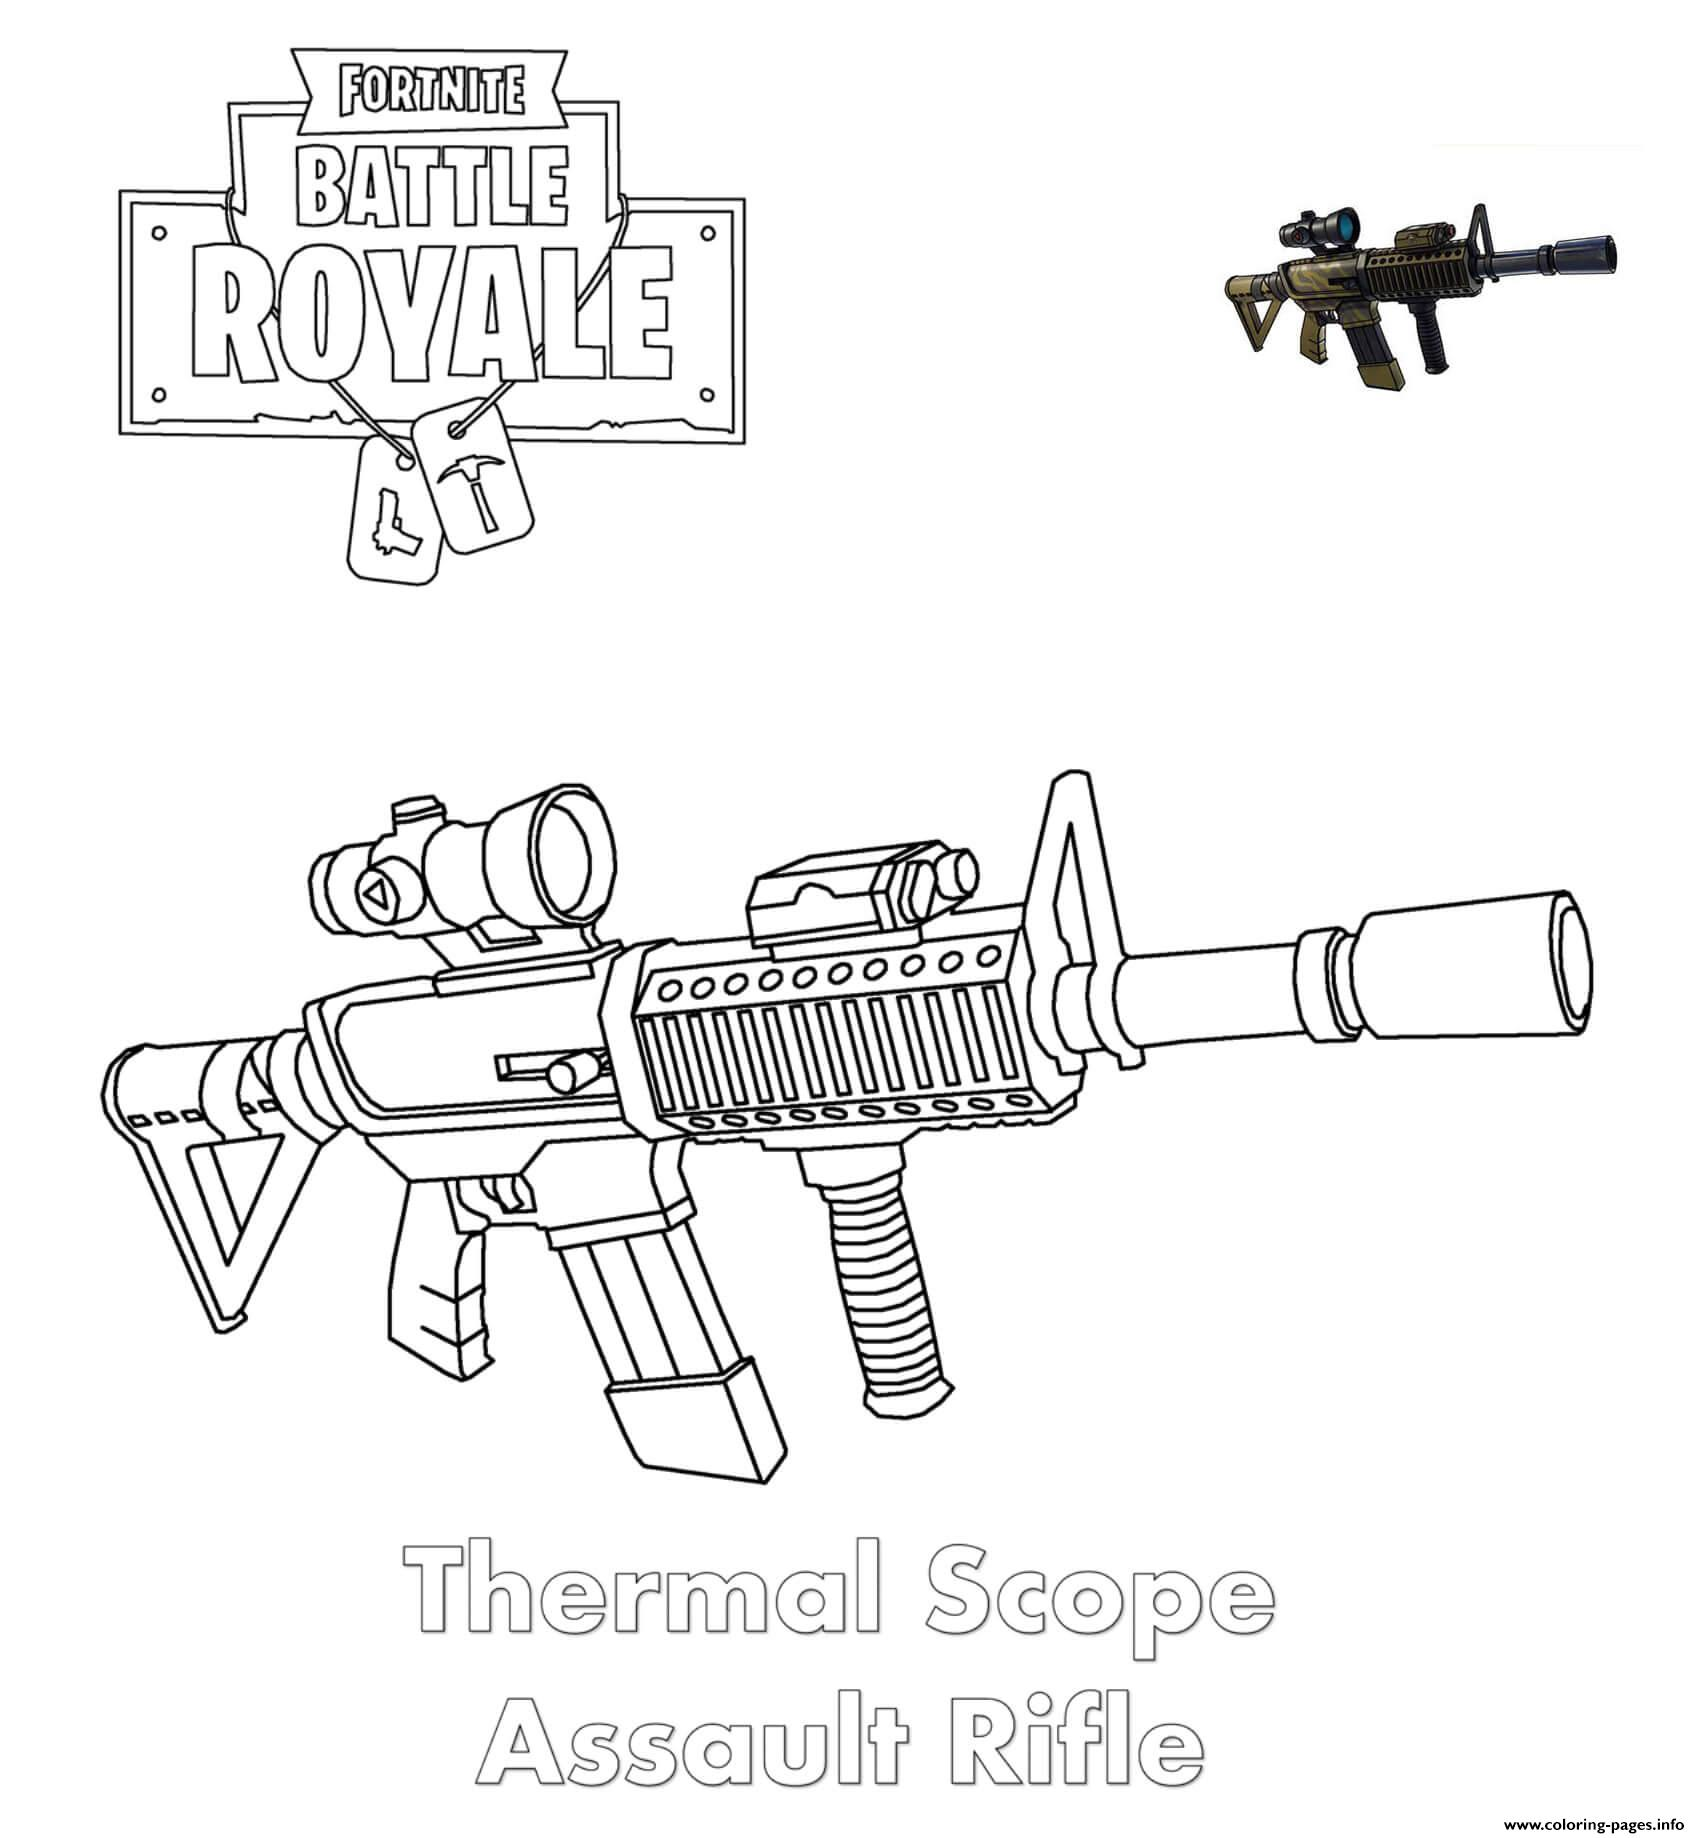 Thermal Scope Assault Rifle Fortnite Coloring Pages Printable